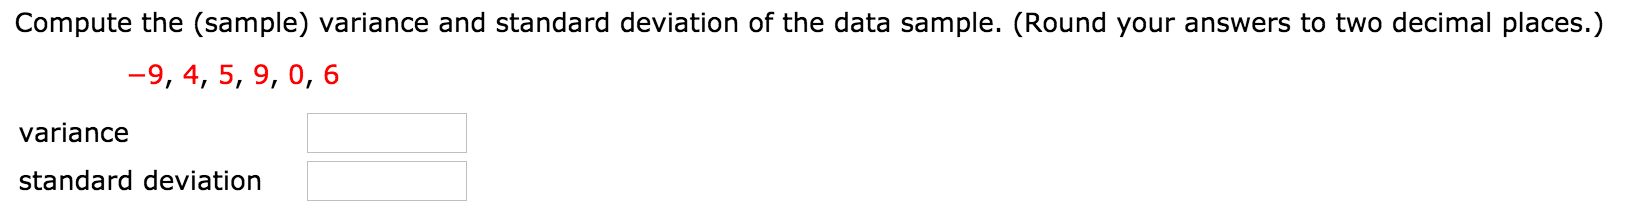 Compute The (sample) Variance And Standard Deviation Of The Data Sample.  (Round